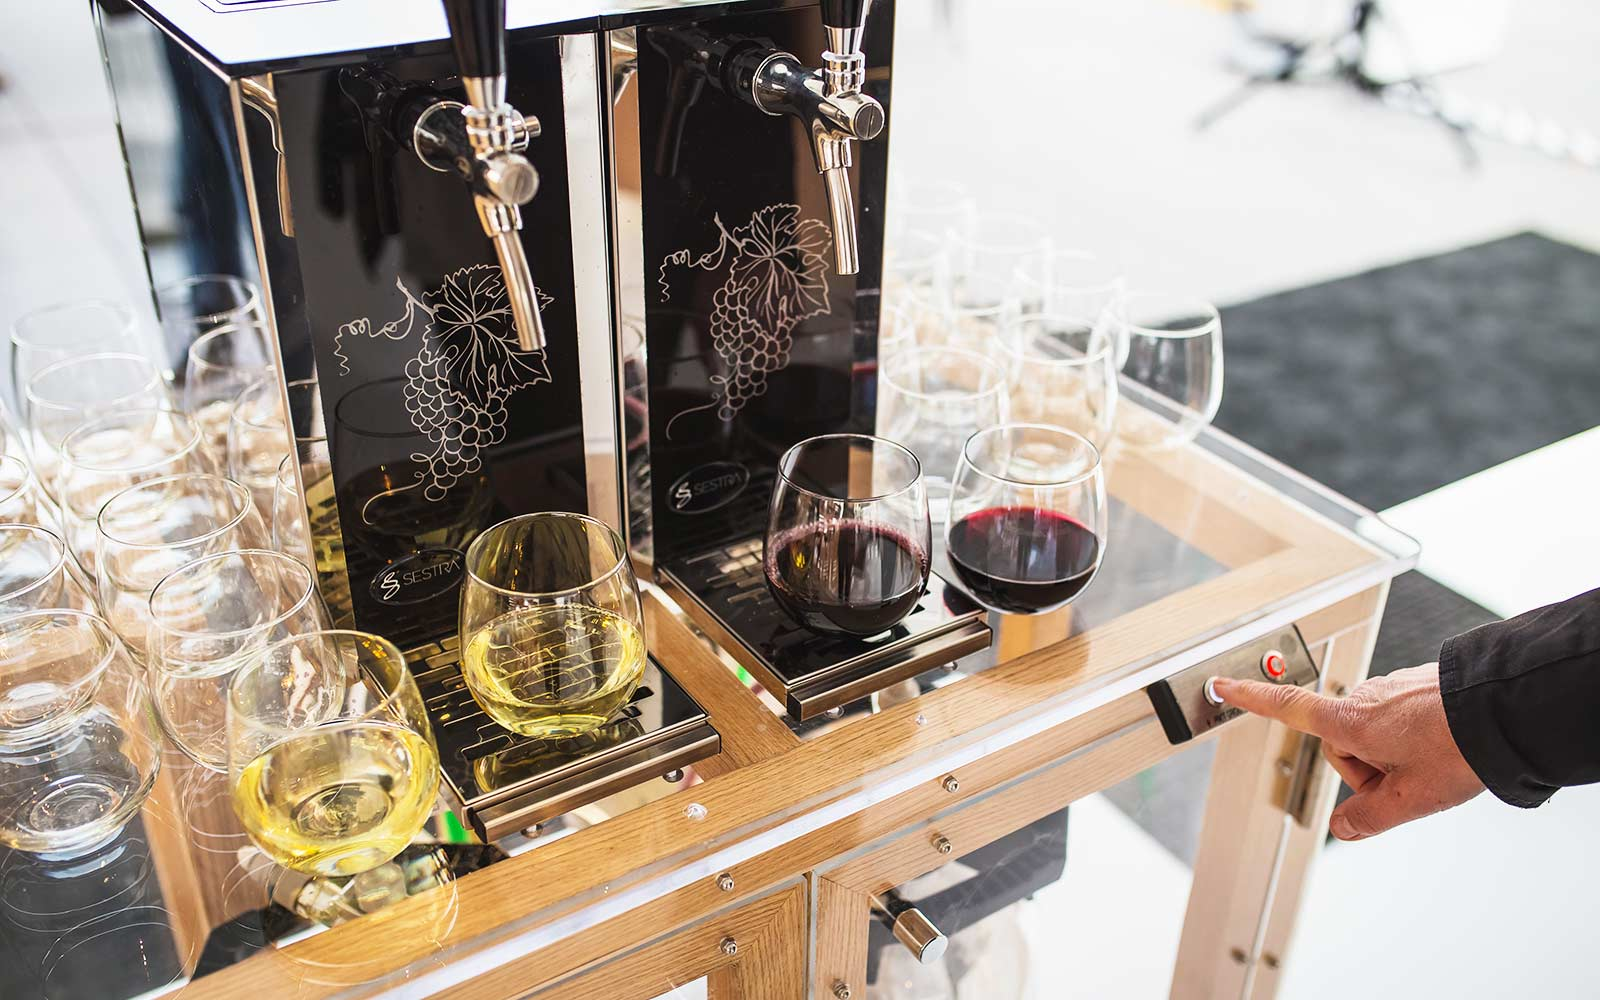 Use Your Room Key to Get Free Wine from a Hotel Drink Cart